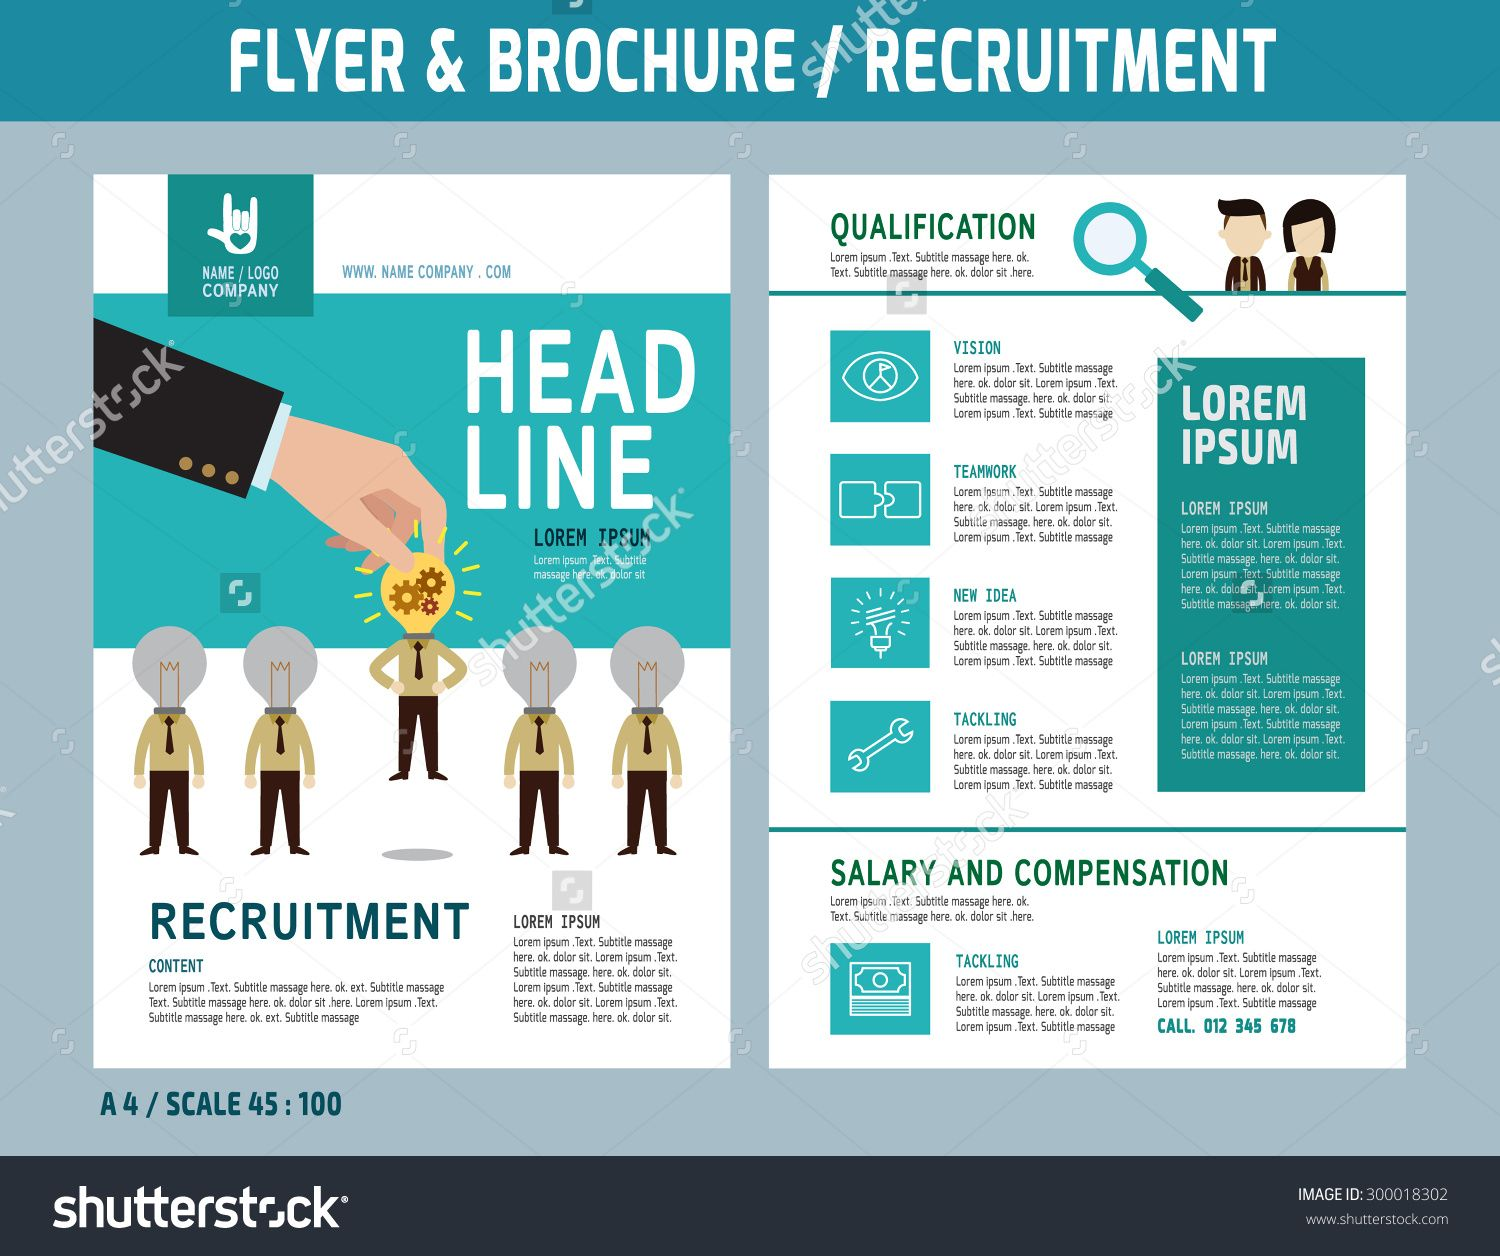 Recruitment Flyer Design Vector Template In A Size Brochure And